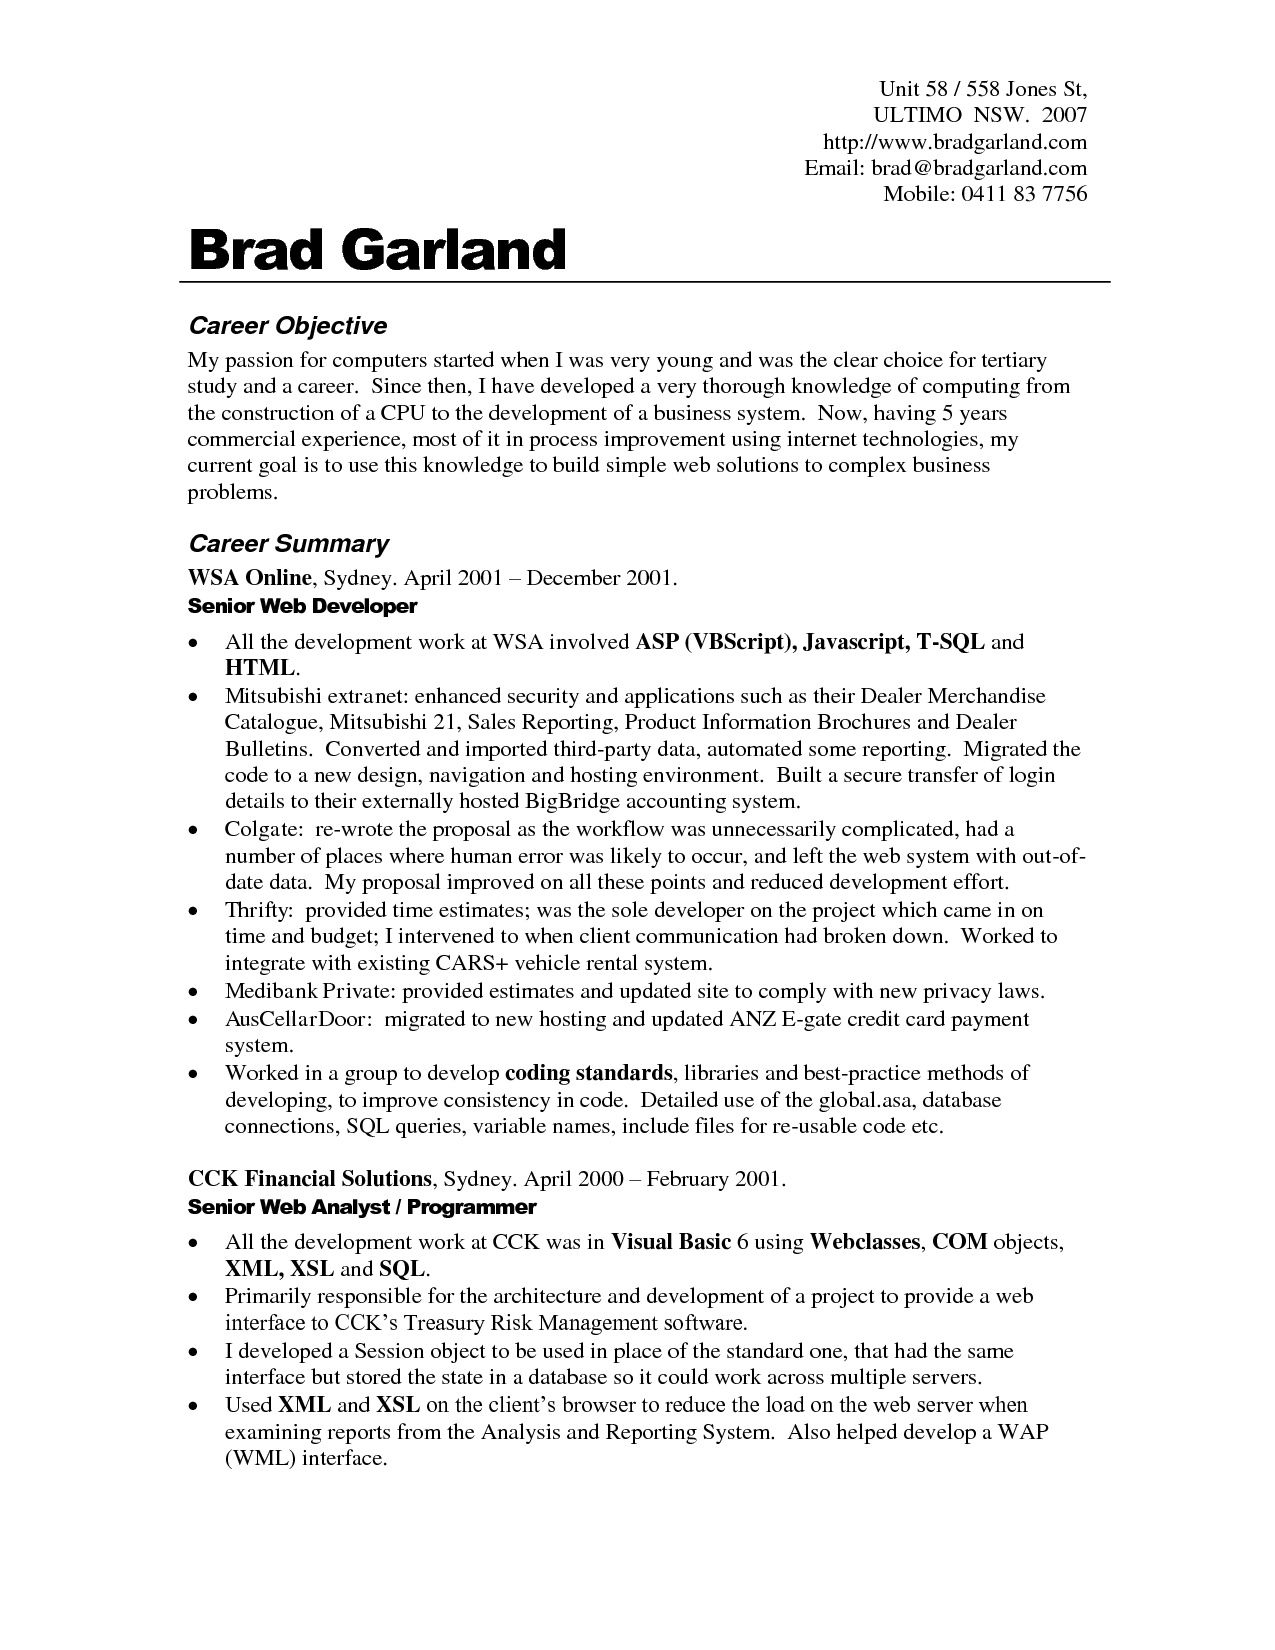 Carrier Objectives For Resume  Accounting Objective Resume